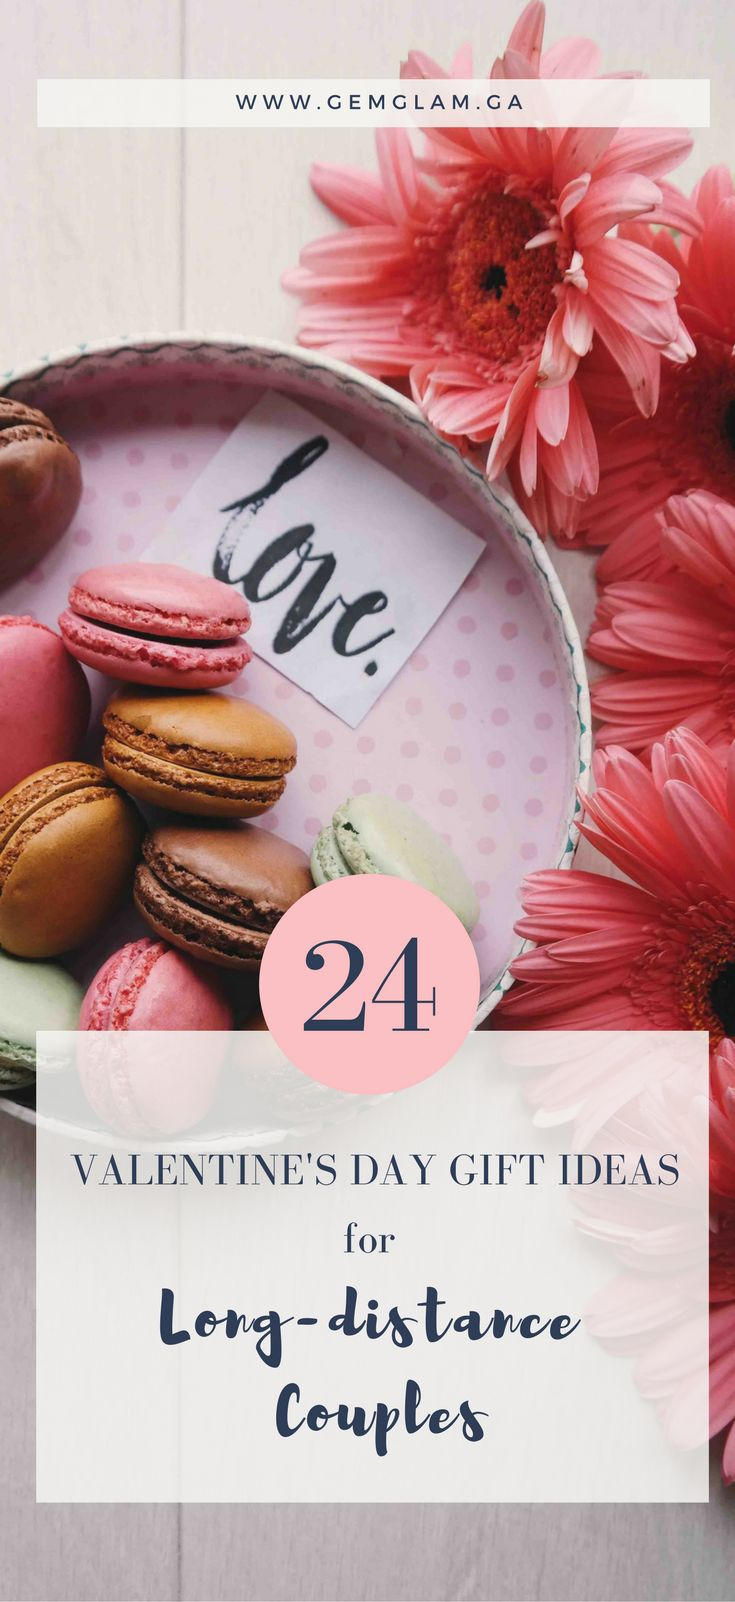 The 25+ Best Long Distance Gifts Ideas On Pinterest | Long Distance  Relationship Gifts, Distance Gifts And Relationship Gifts